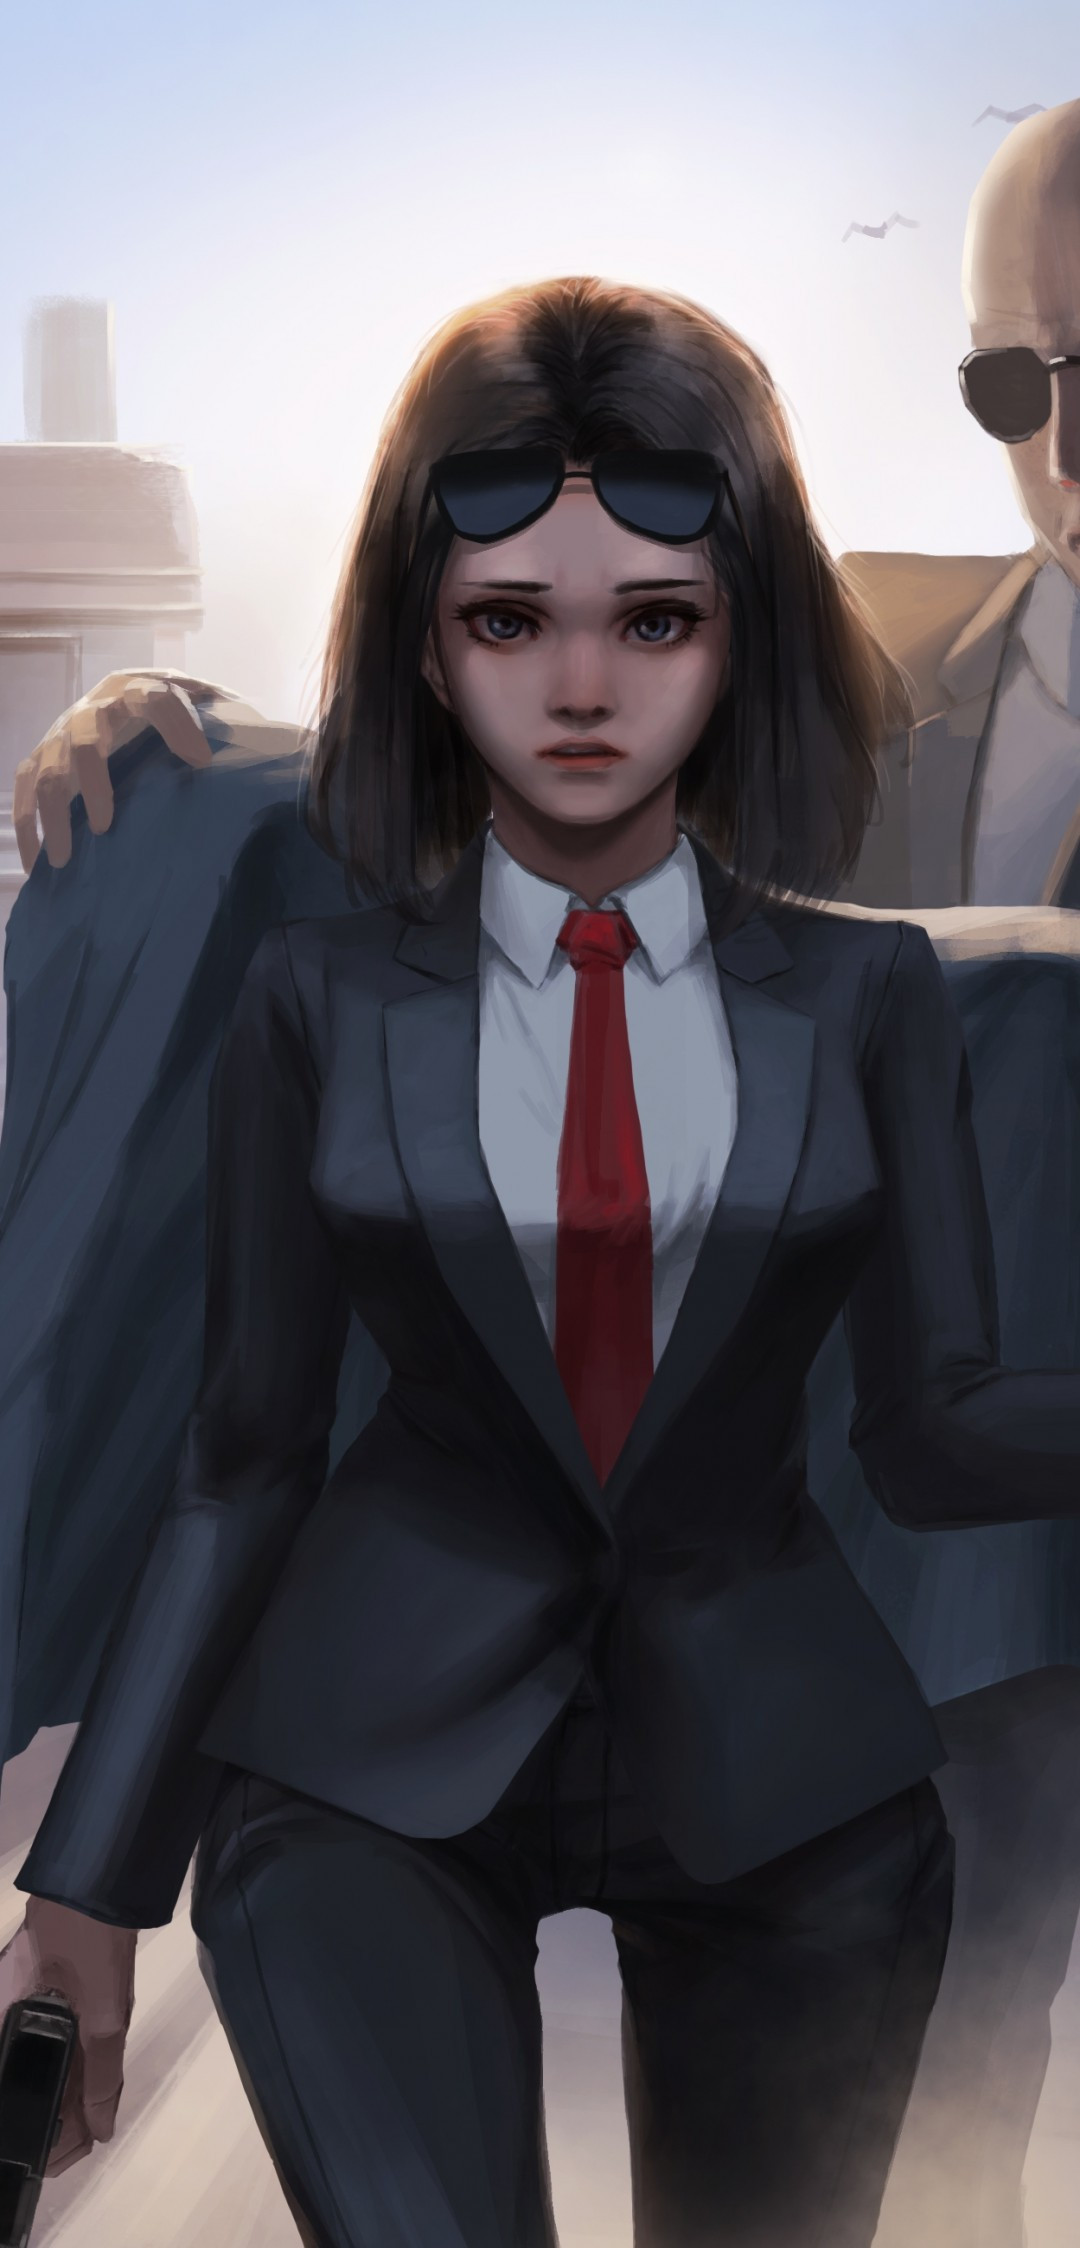 Anime girl in suit